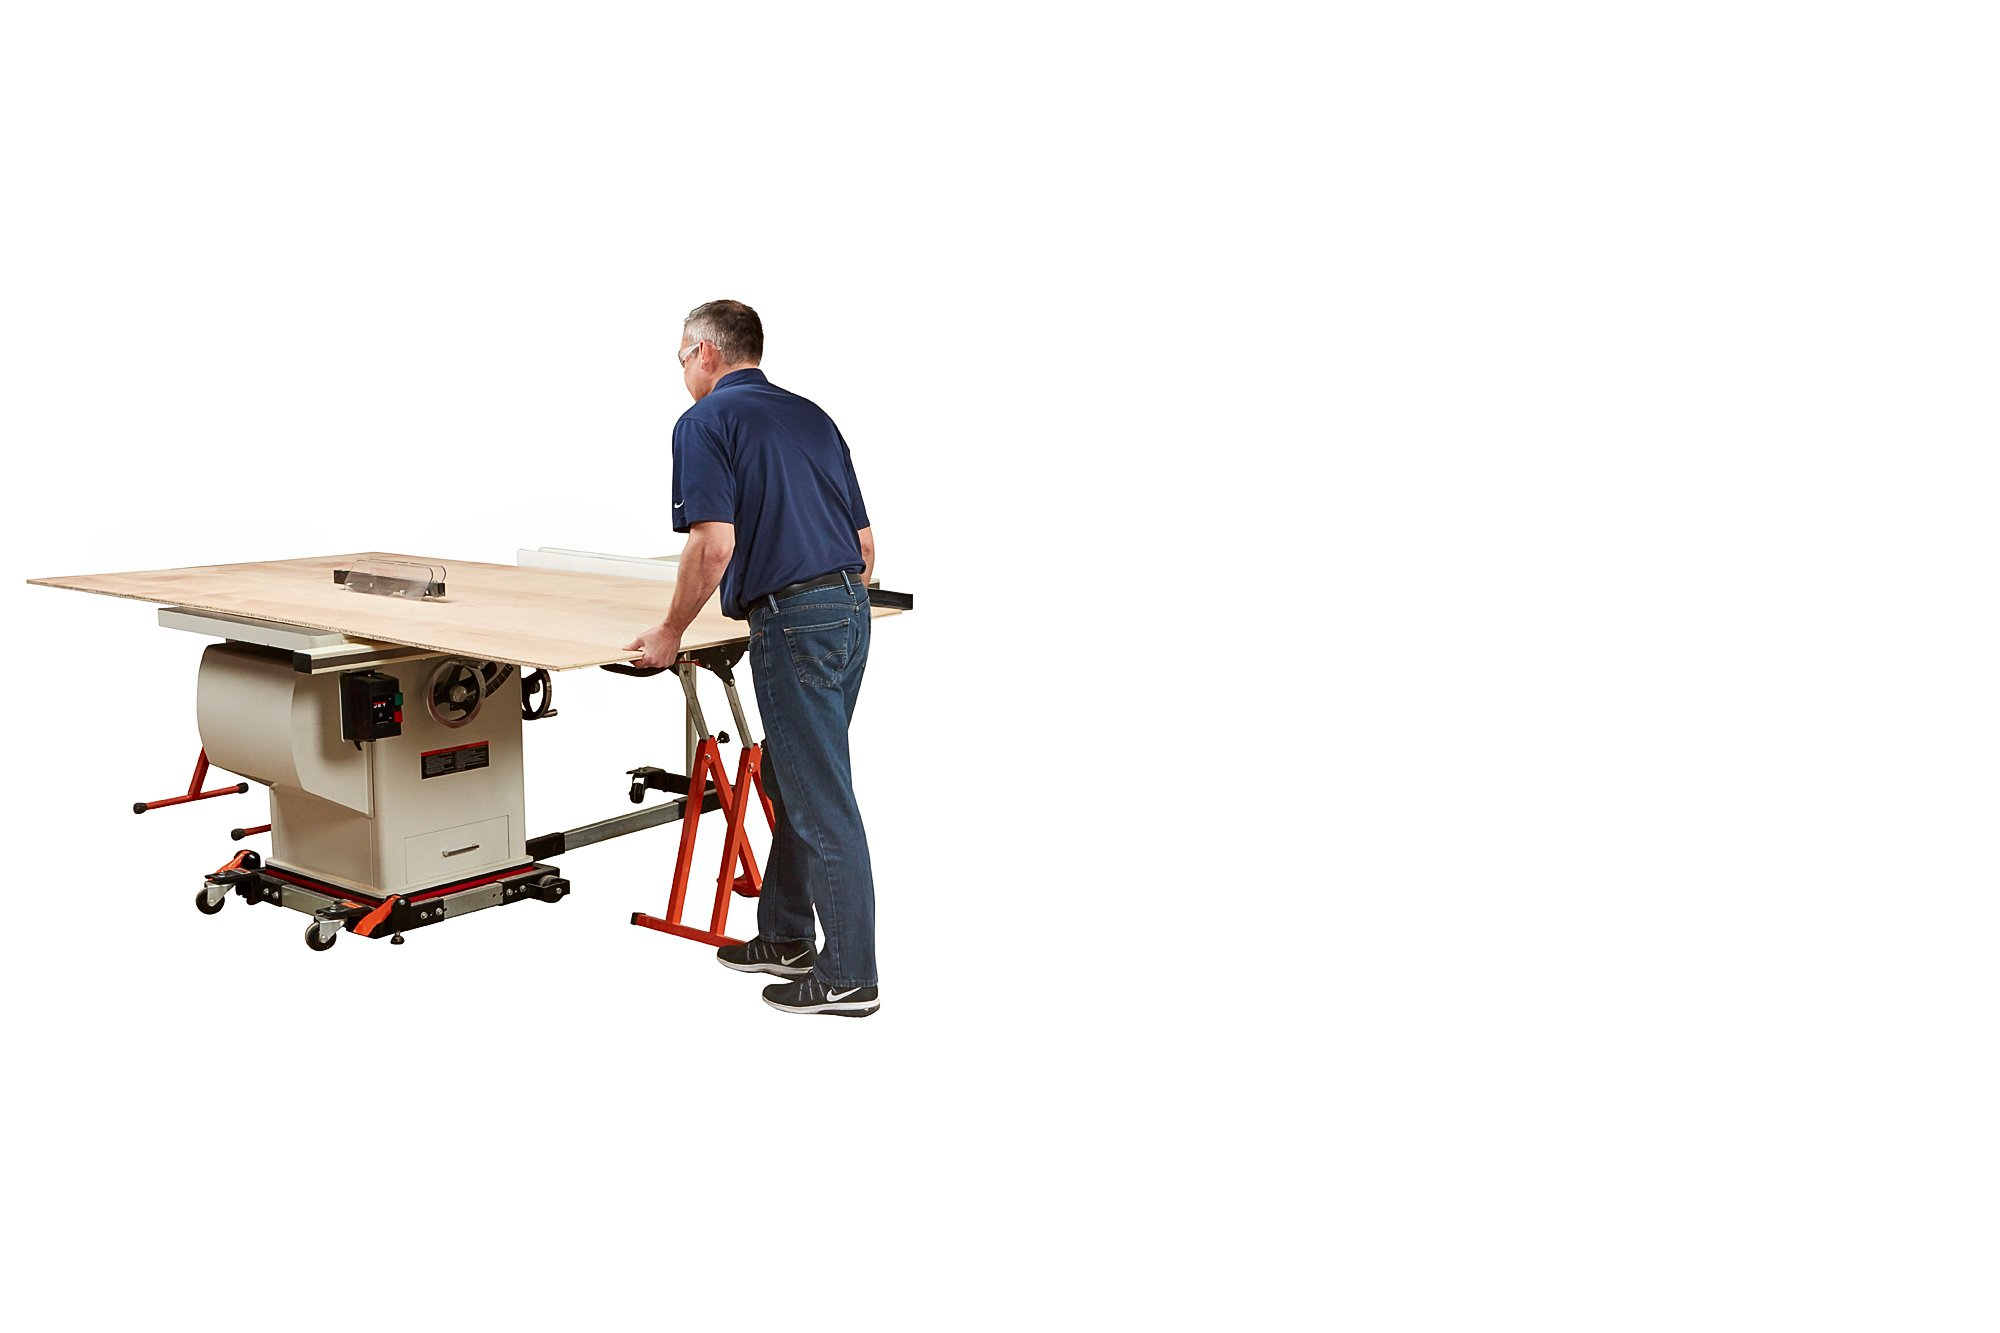 Portamate PM-1800 Panel Carrier Full 4x8 Sheet Carrier Board Cart Table Saw Feed Stand That Allows One Person to Easily Move and Cut 4x8 Sheets